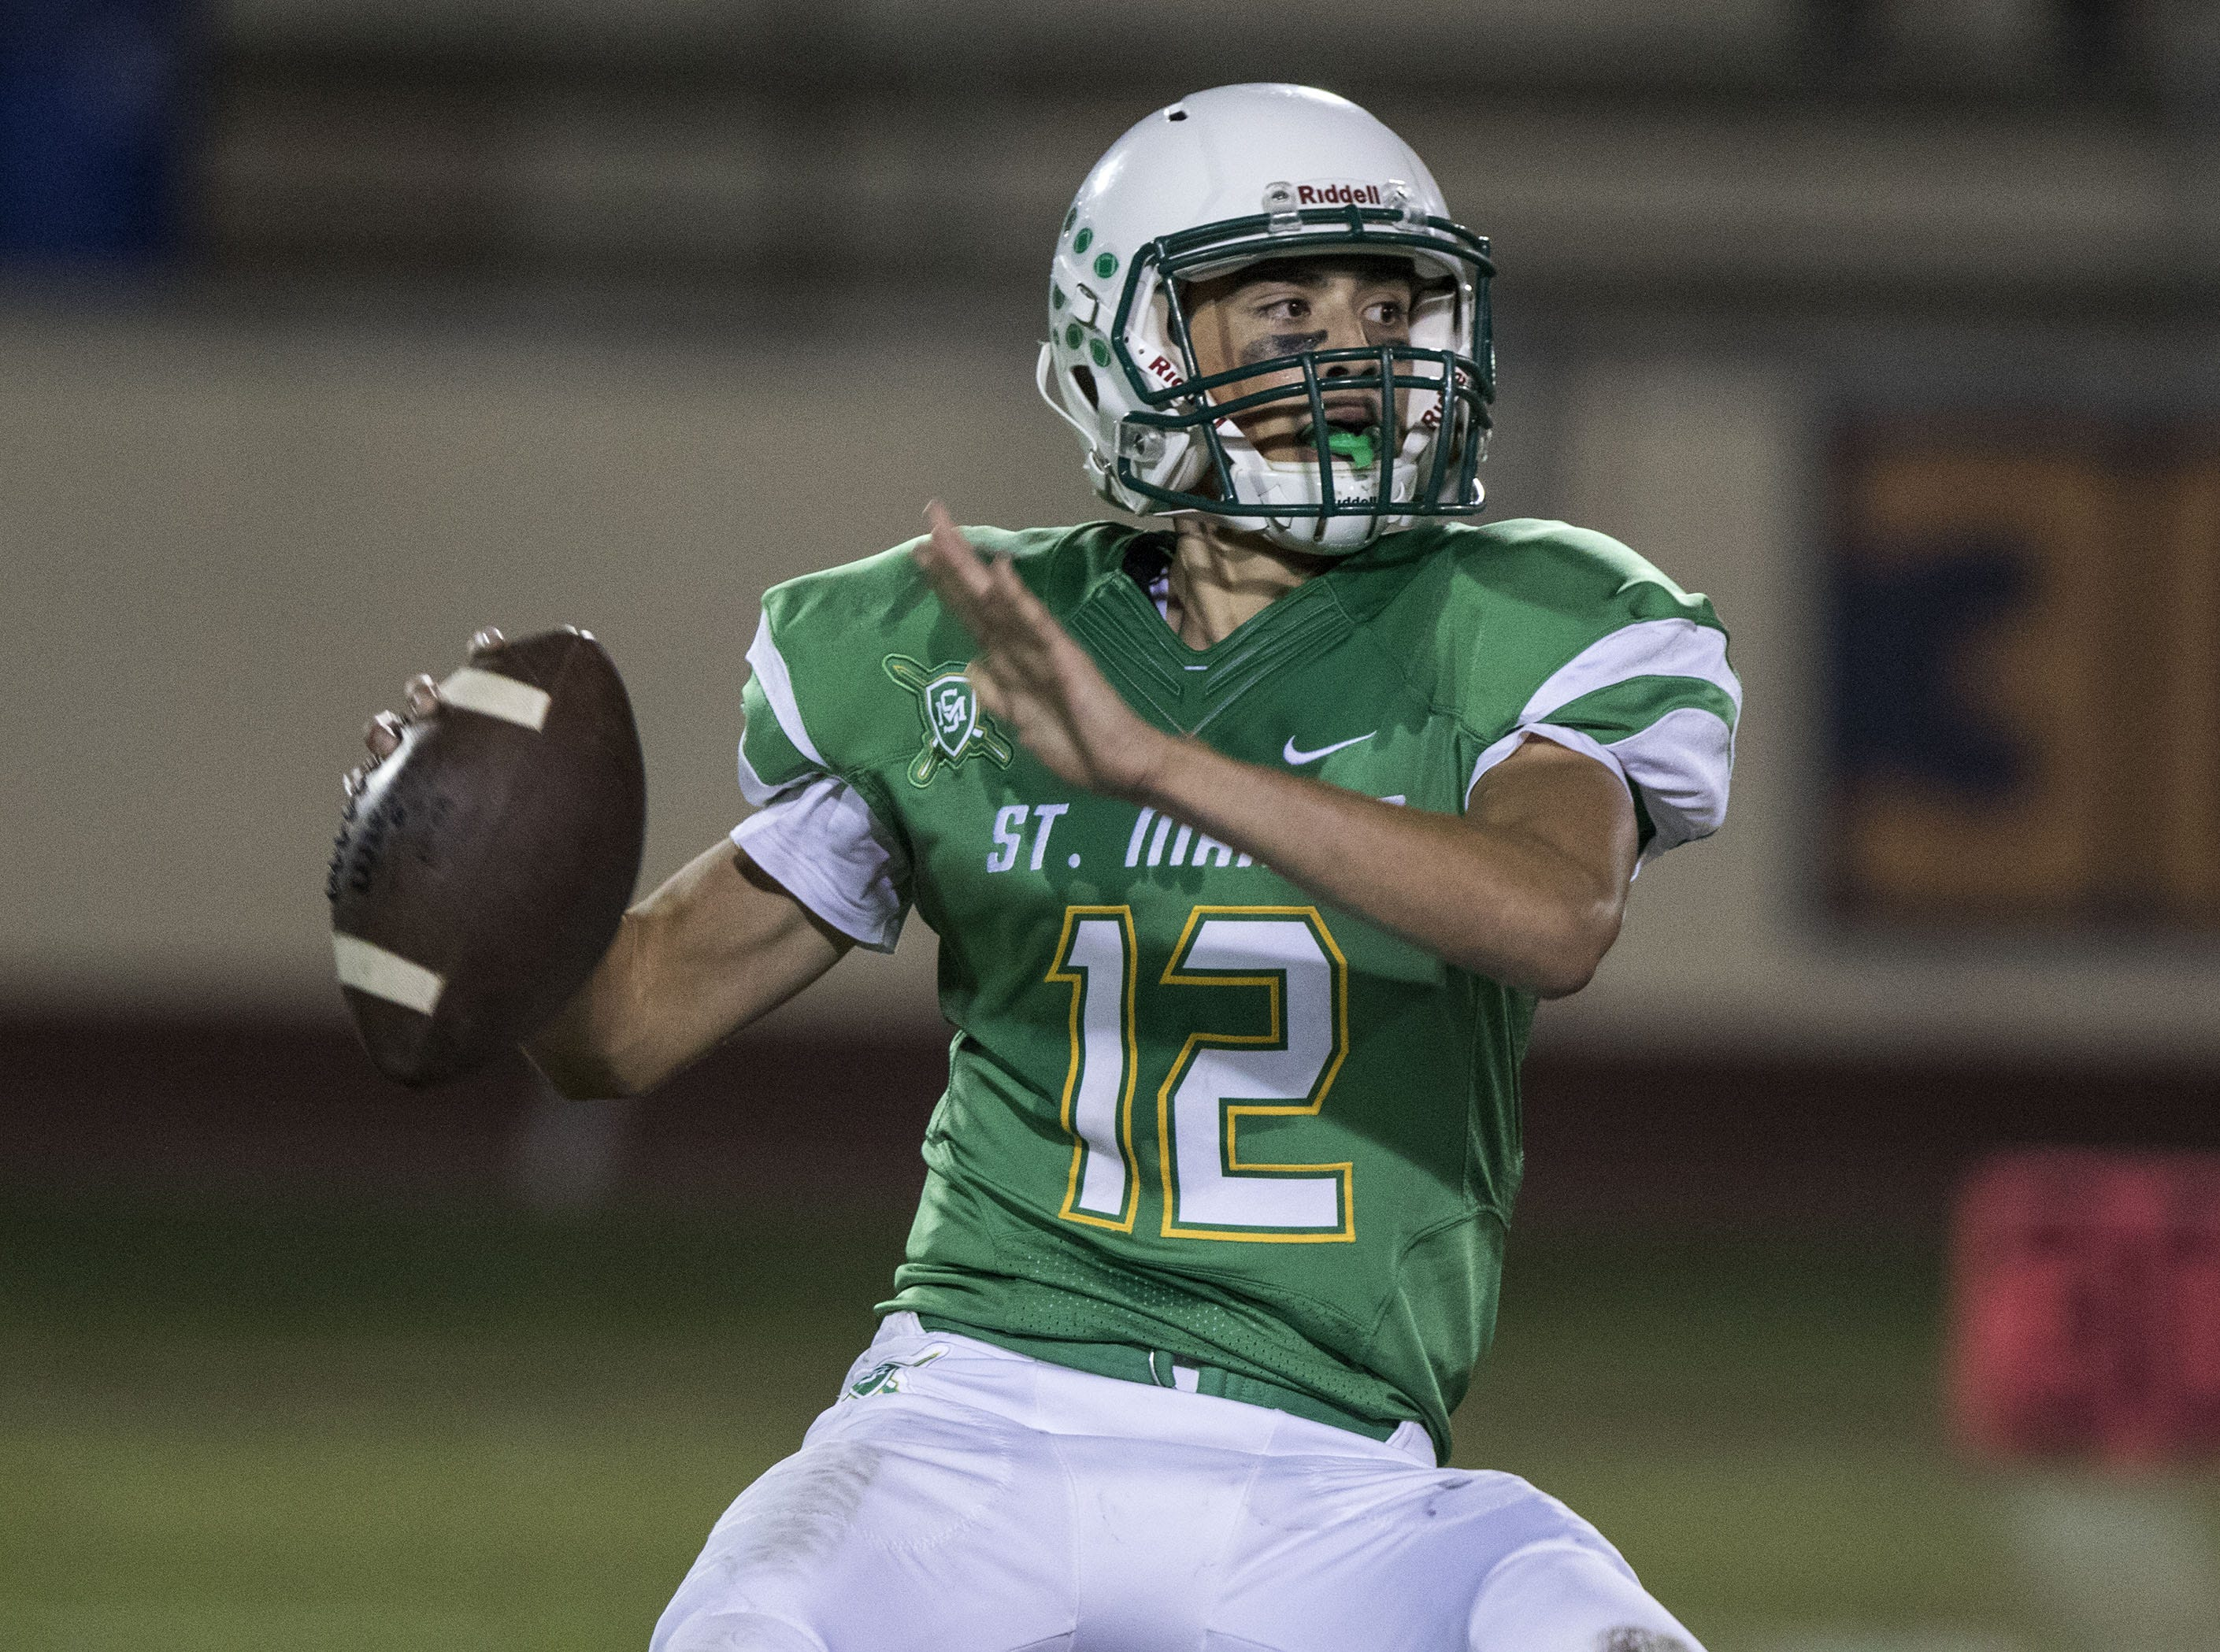 St. Mary's Alex Pacheco looks to throw against Greenway during their game at Phoenix College in Phoenix Friday, Oct. 12, 2018. #azhsfb